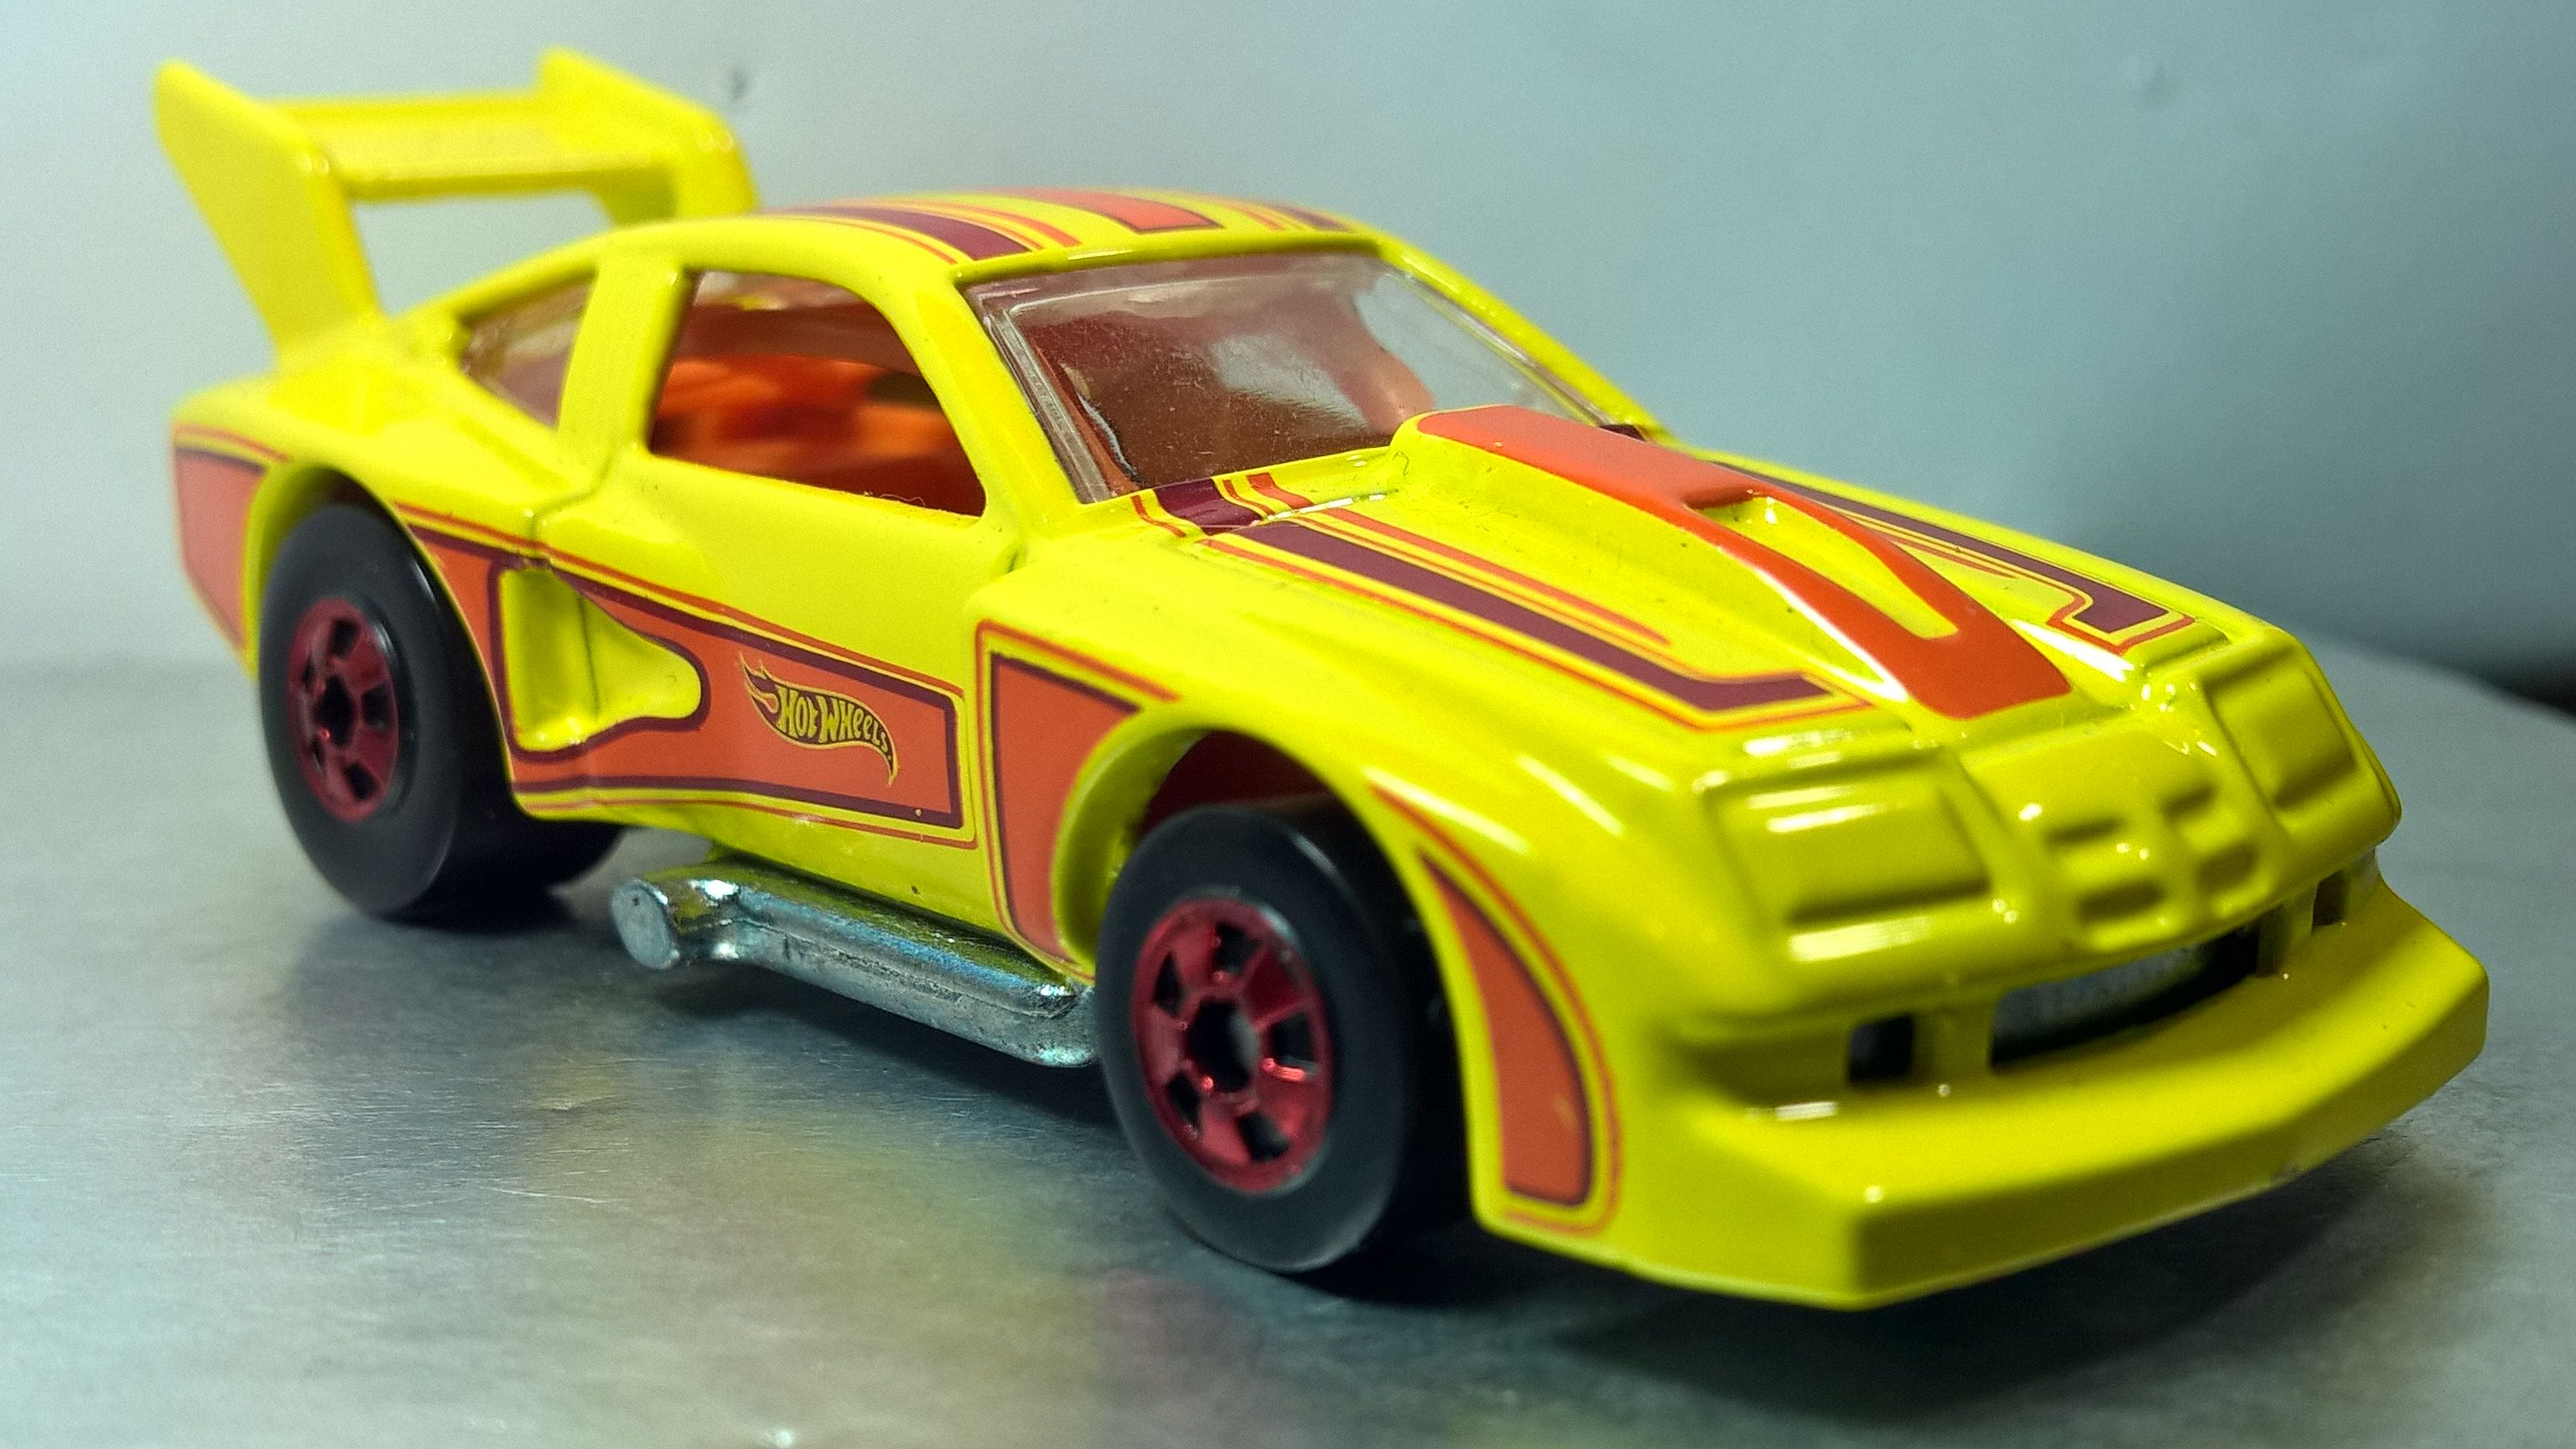 Hot Wheels 76 Chevy Monza Flying Customs 2013 Hot Wheels Toy Car